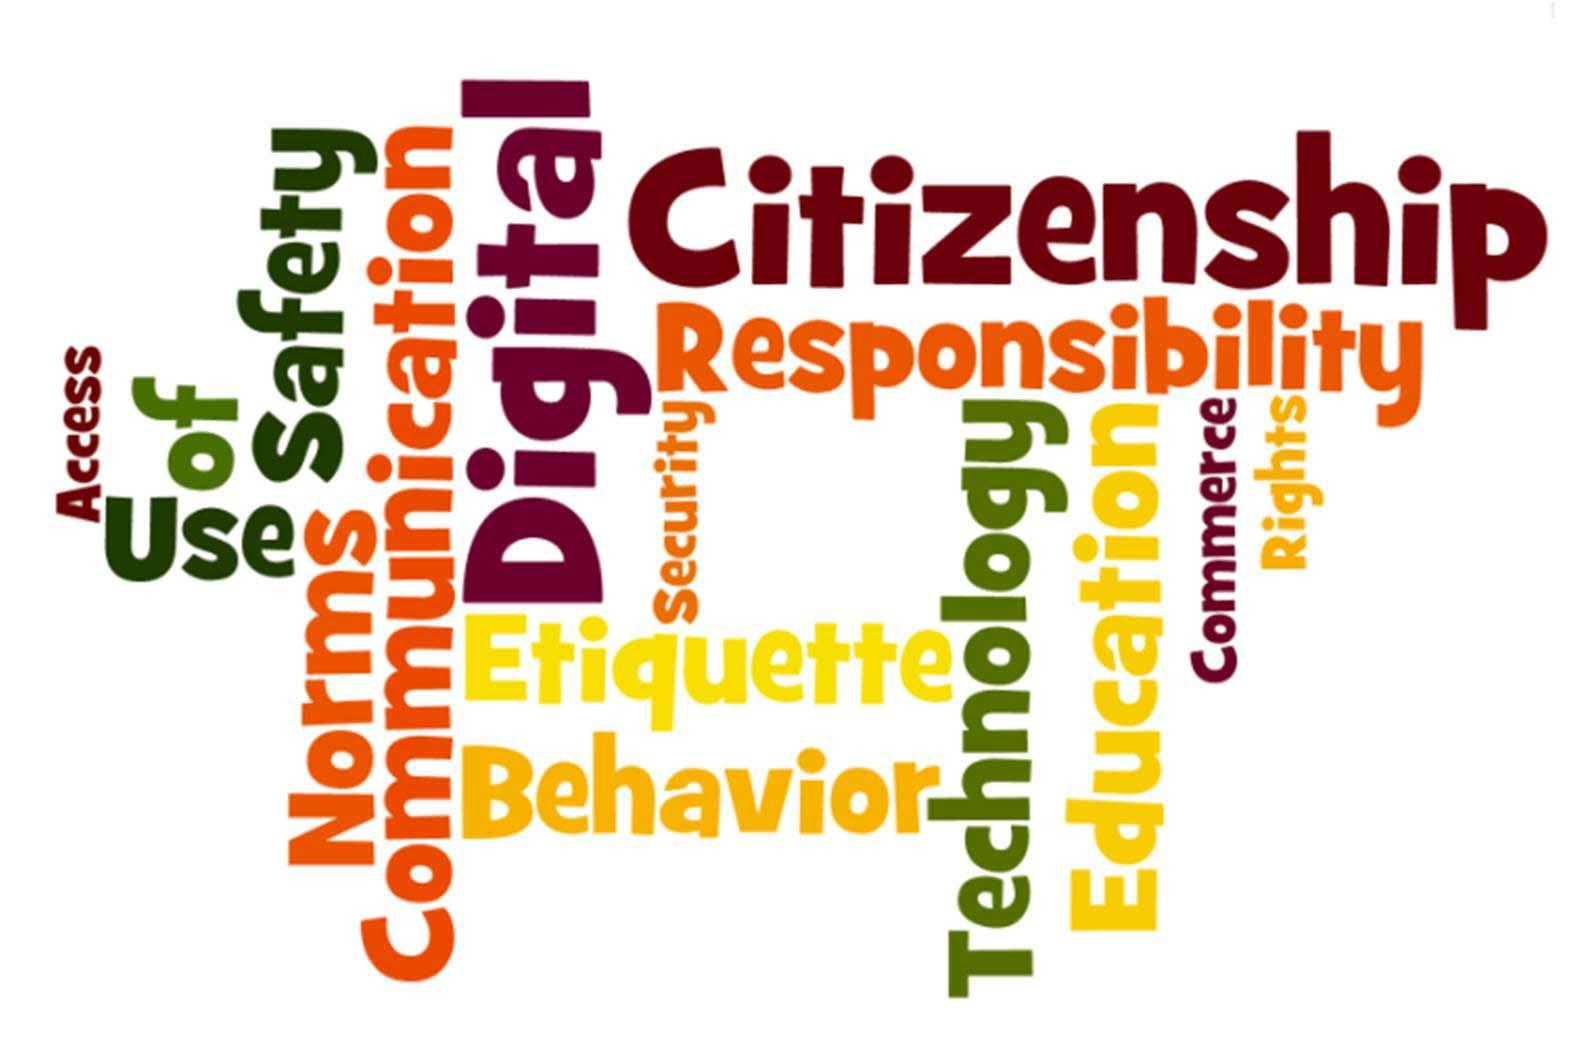 conditions needed for the success of a democracy in a country image source edtechreview in images digital citizenship jpg